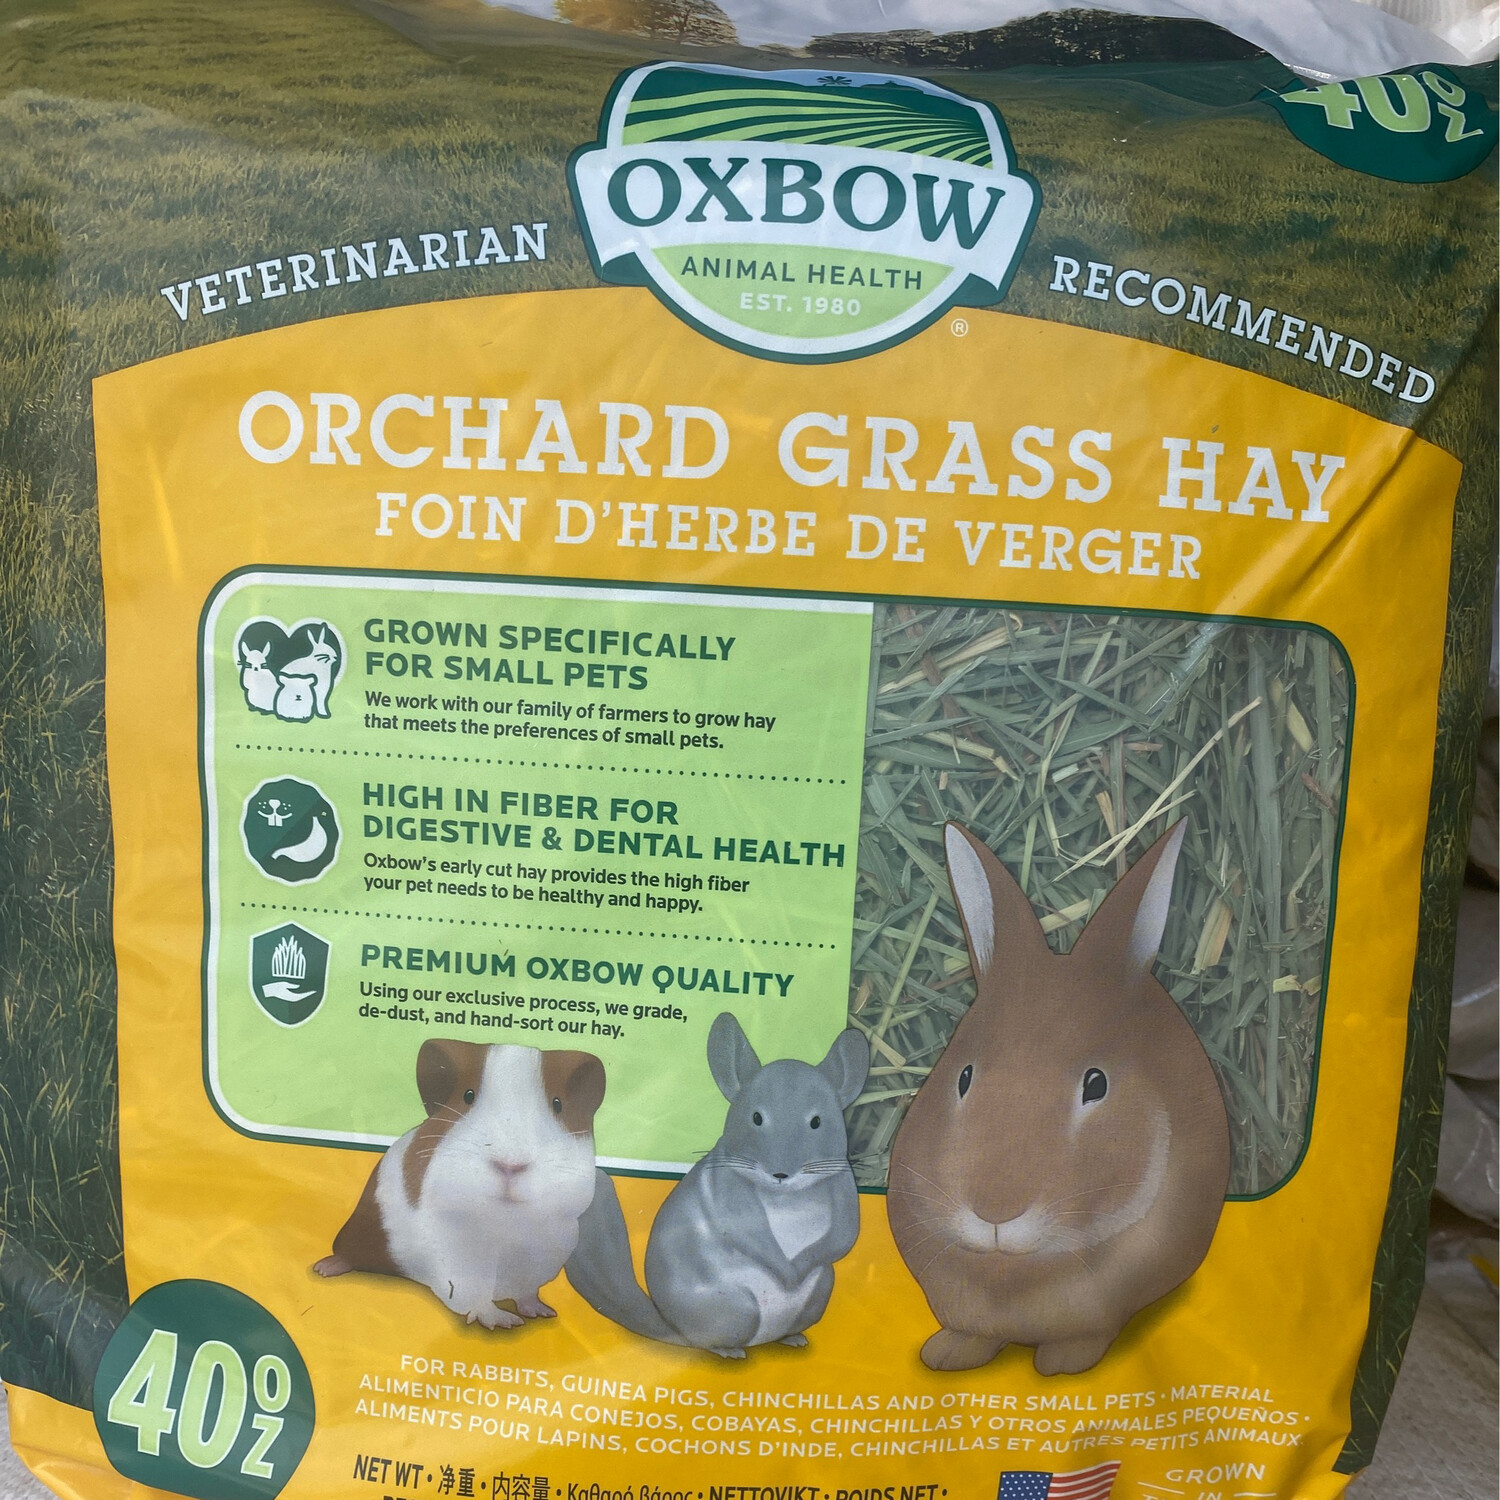 Oxbow Orchard Grass Hay 1.13kg